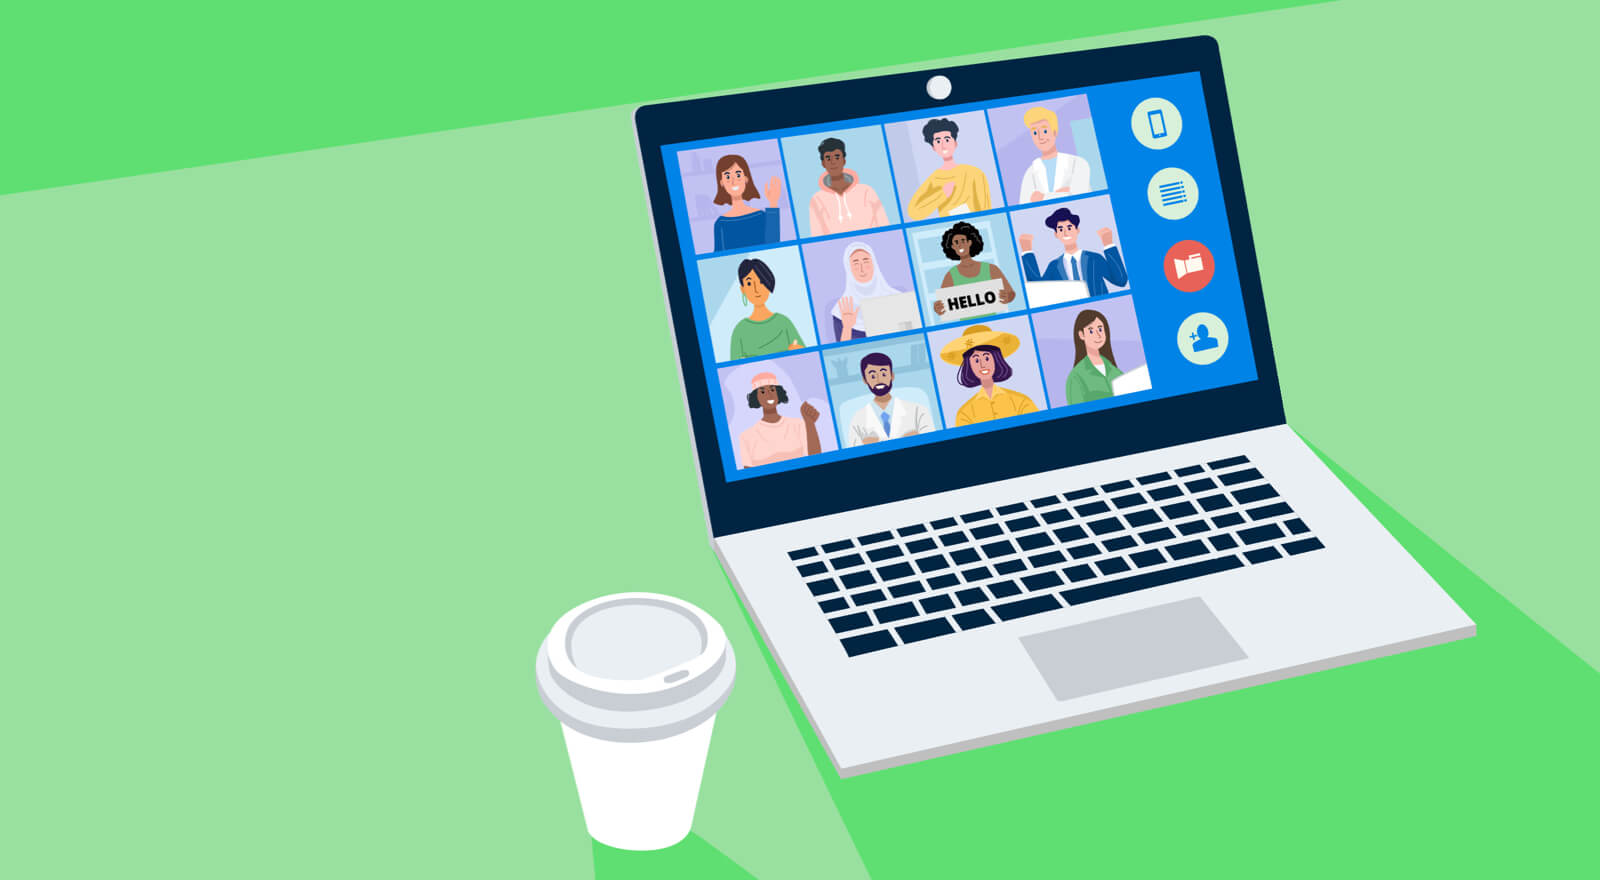 Real Corporate Culture for a Virtual Workforce